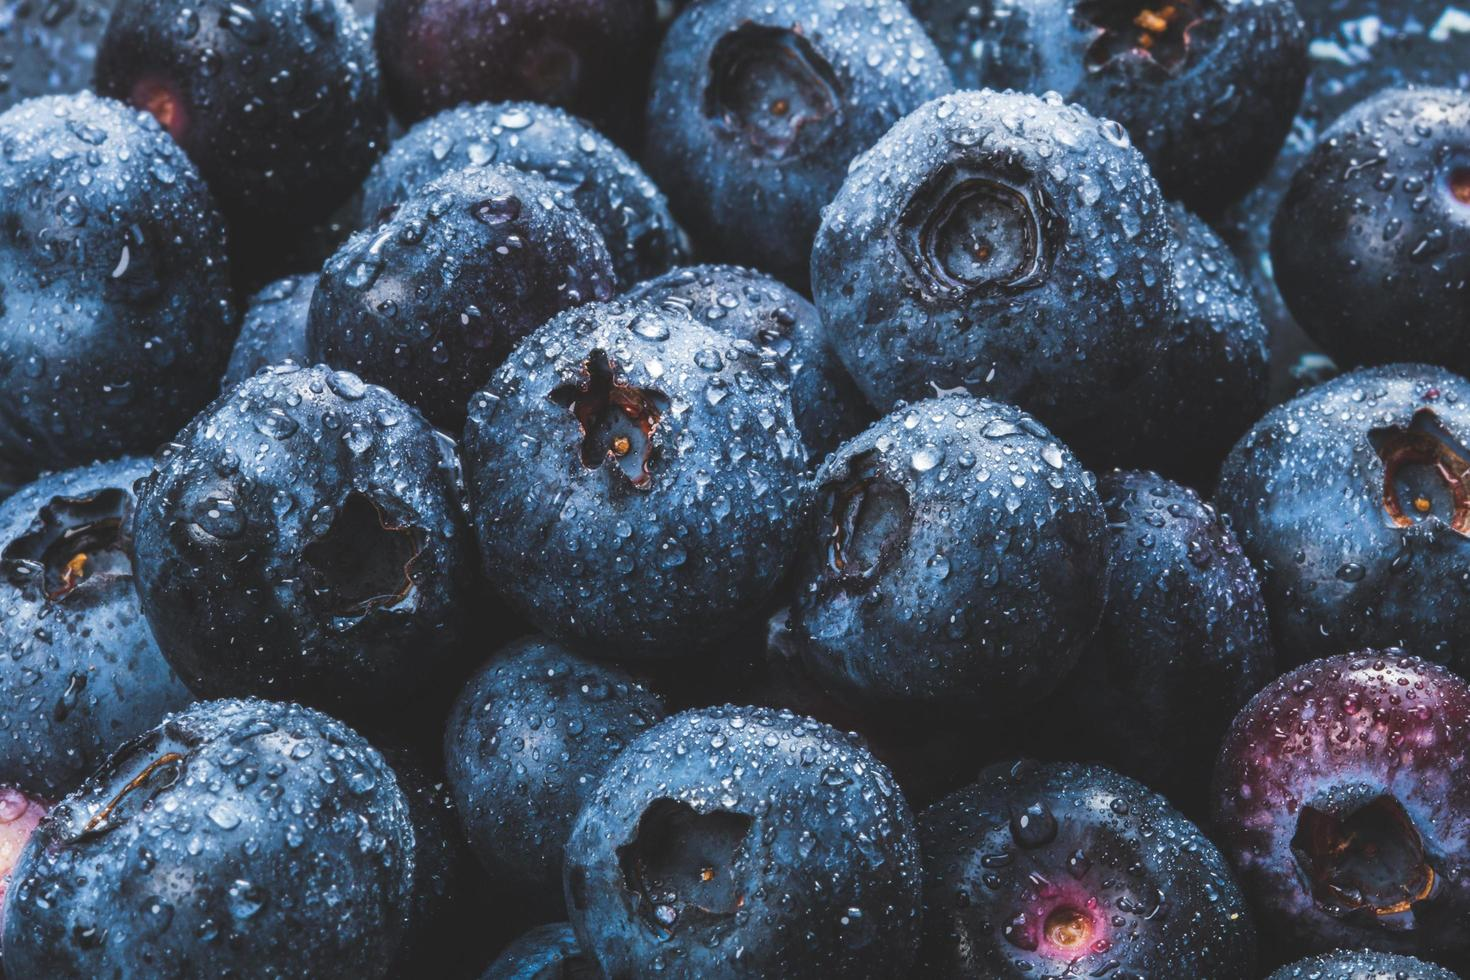 Blueberries with water drops photo